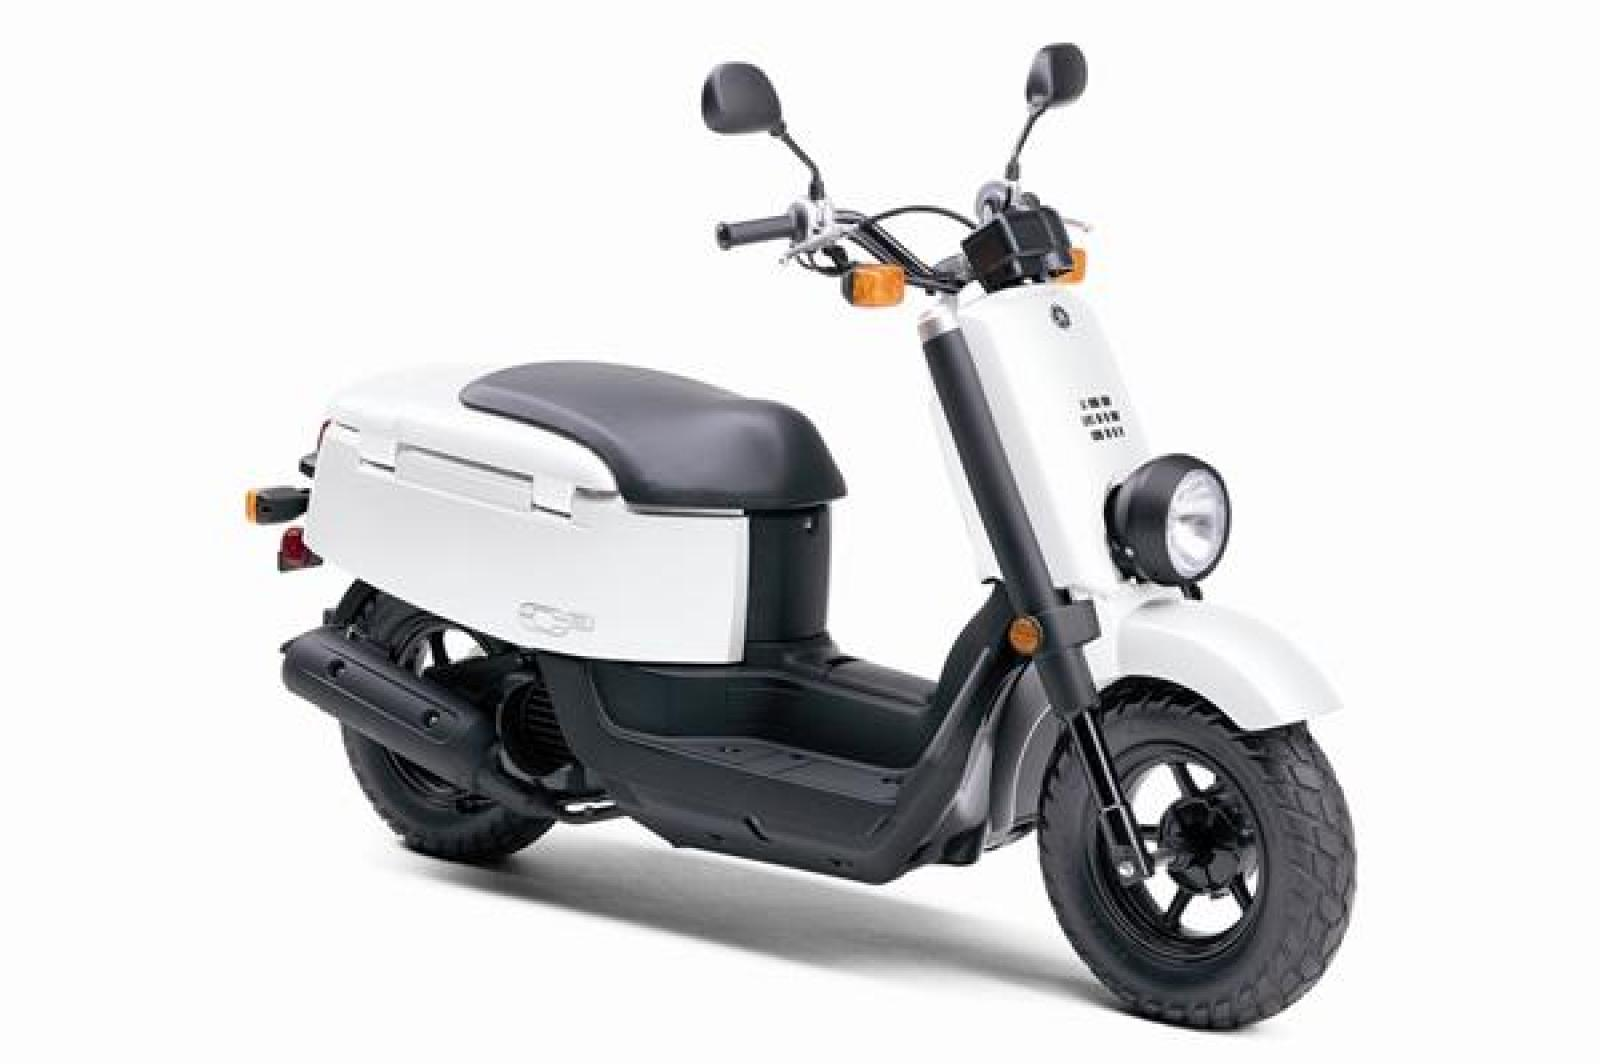 hight resolution of 800 1024 1280 1600 origin honda ruckus